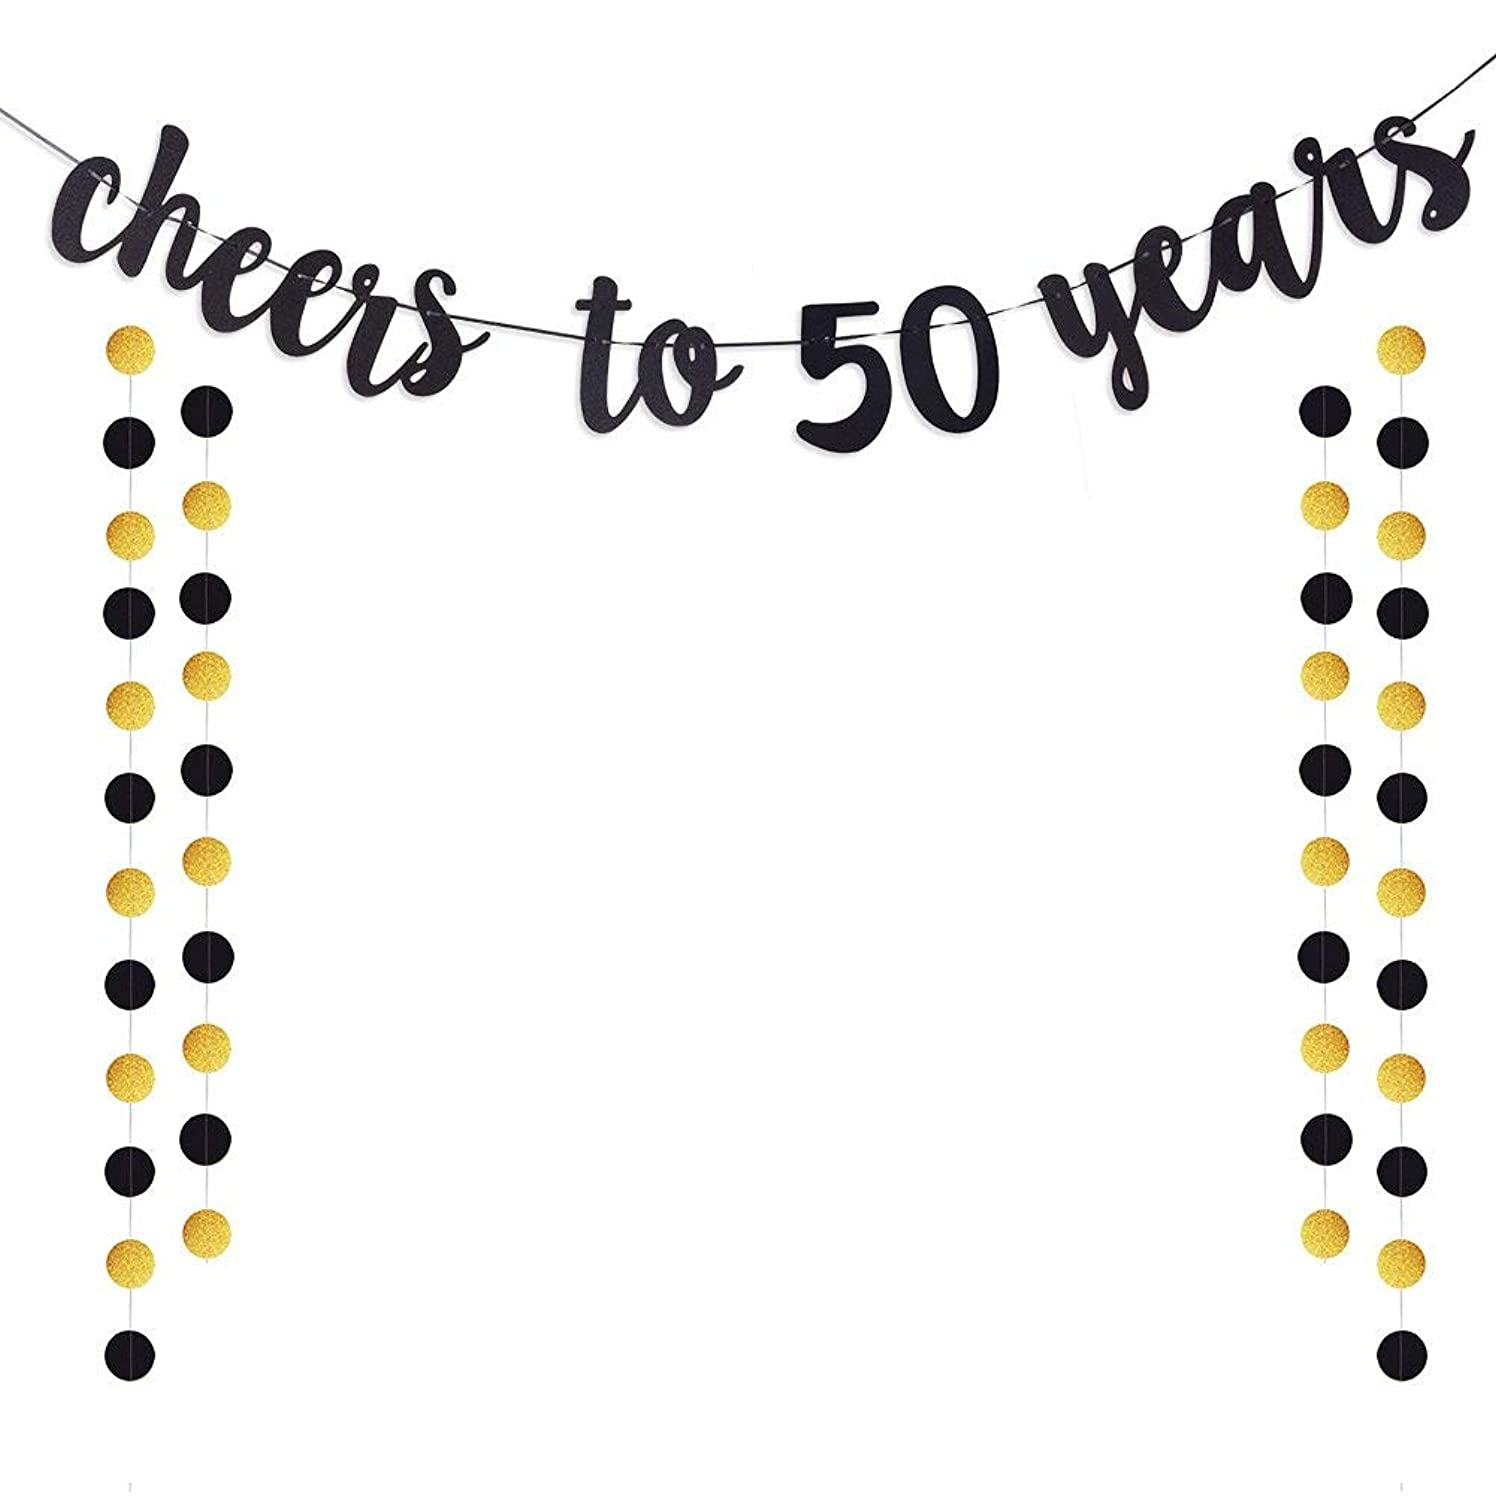 Moohome Cheers to 50 Years Gold Glitter Banner for Adult 50th Birthday Party Supplies Wedding Anniversary Party Decorations